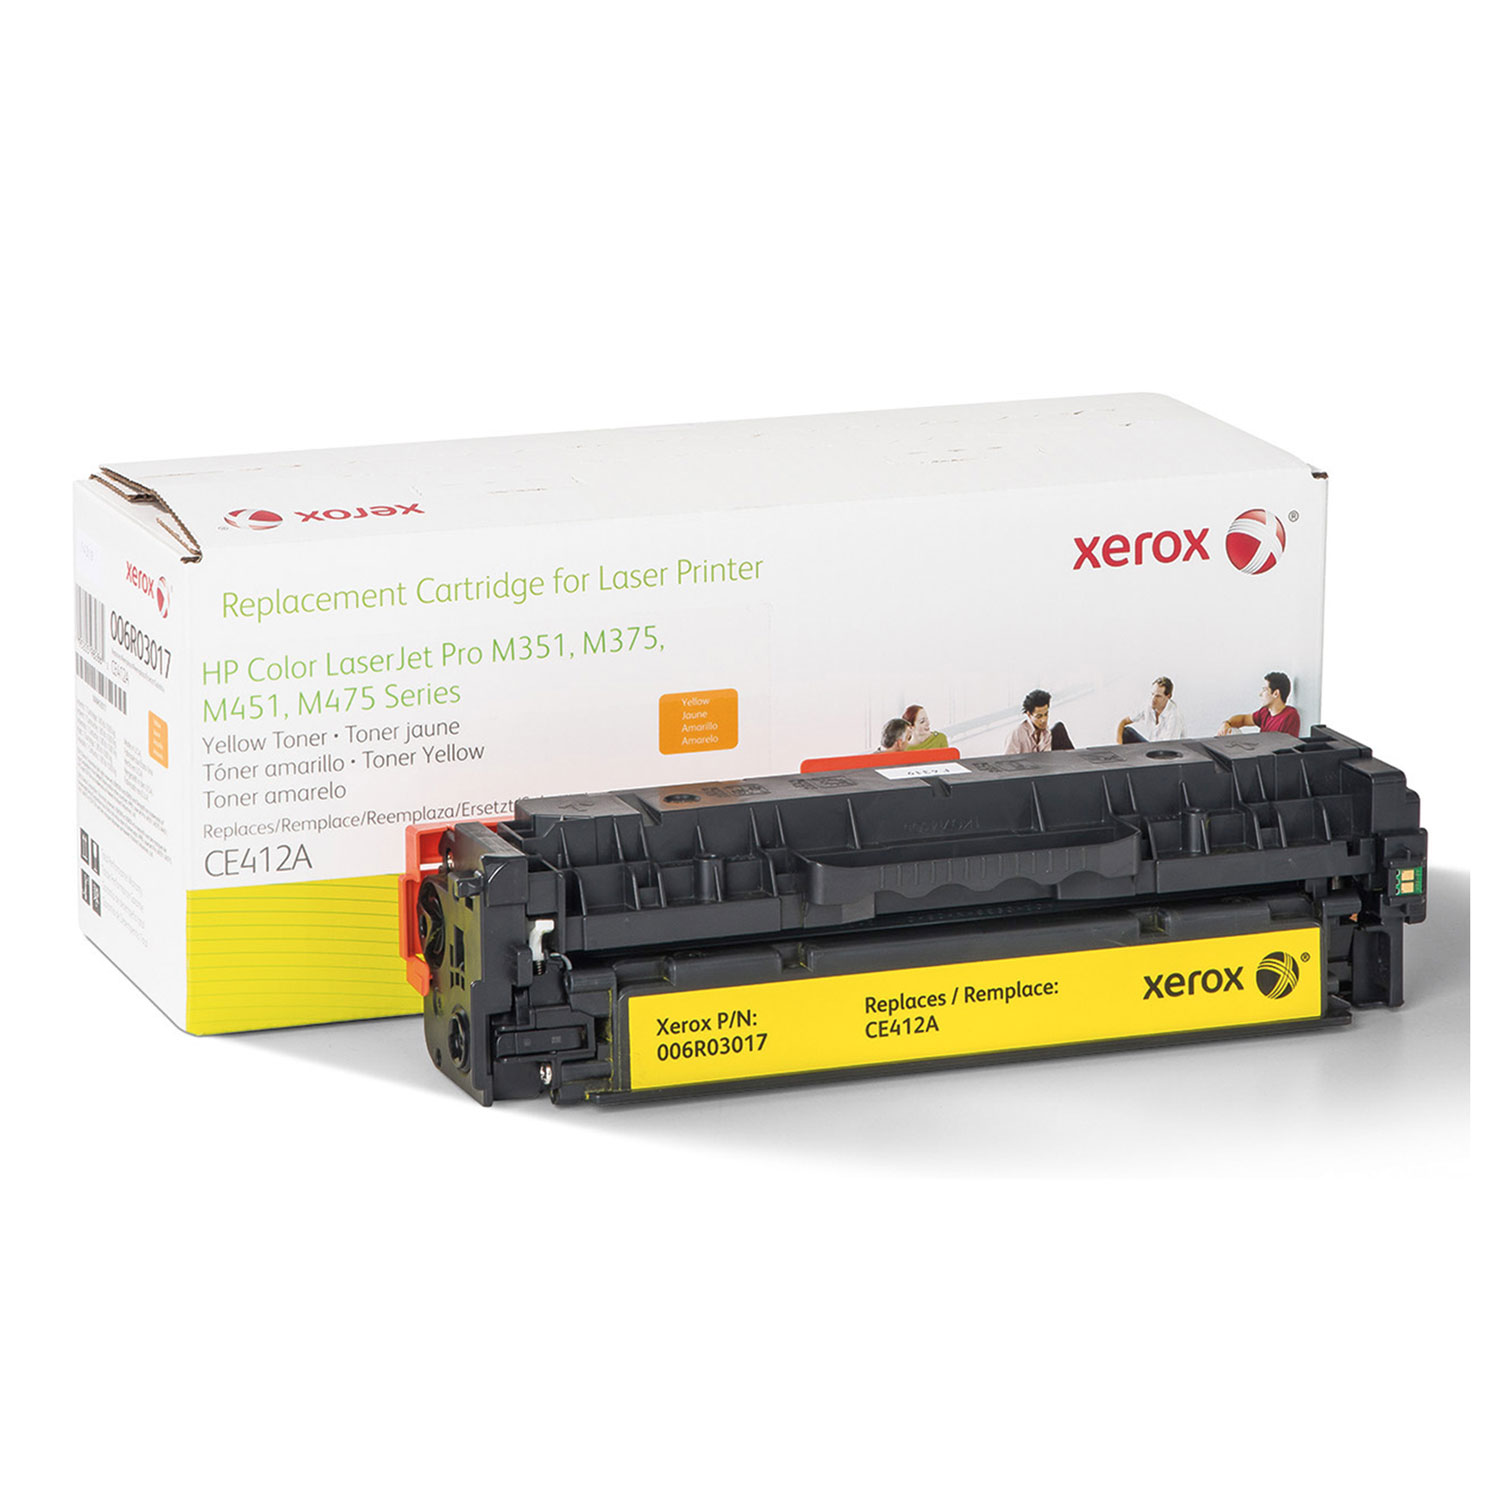 006R03017 Replacement Toner for CE412A (305A), Yellow XER006R03017